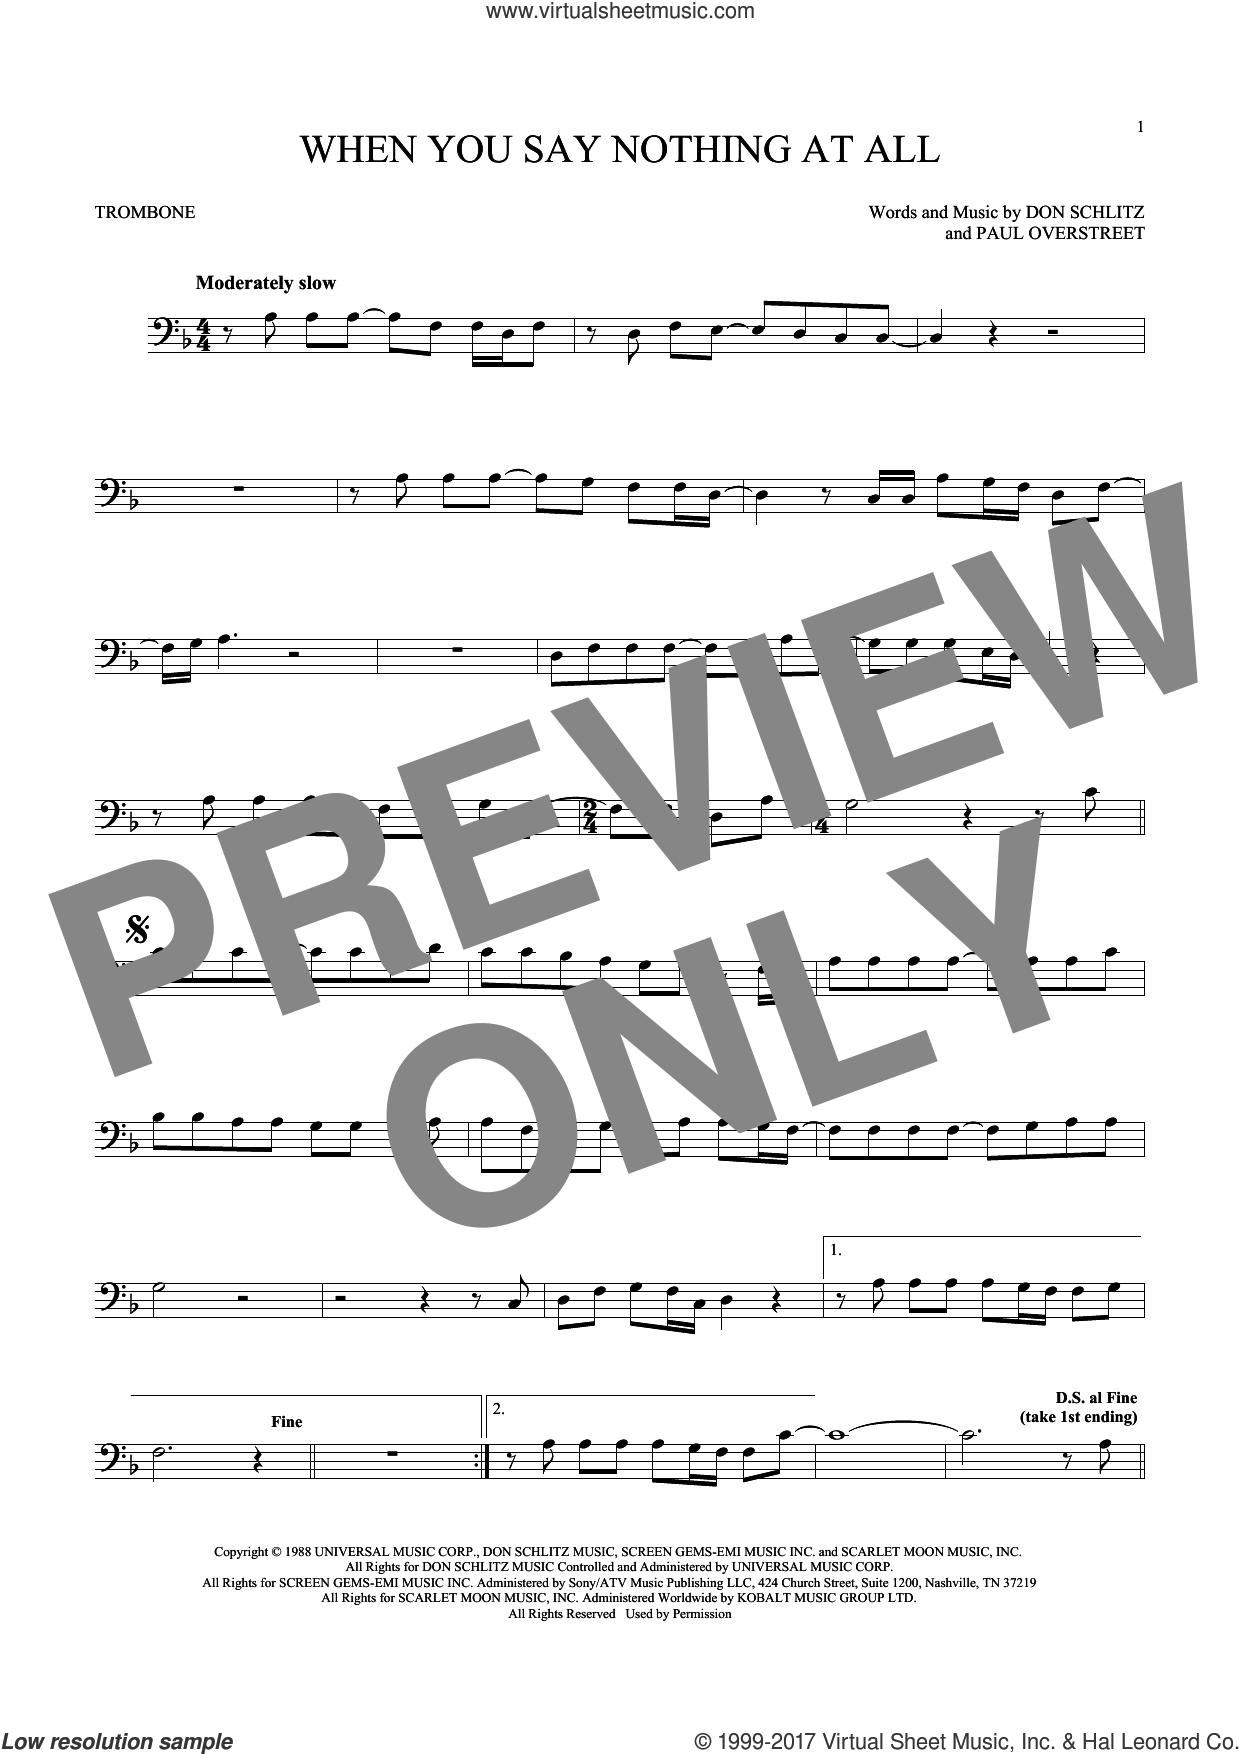 When You Say Nothing At All sheet music for trombone solo by Alison Krauss & Union Station, Keith Whitley, Don Schlitz and Paul Overstreet, wedding score, intermediate skill level